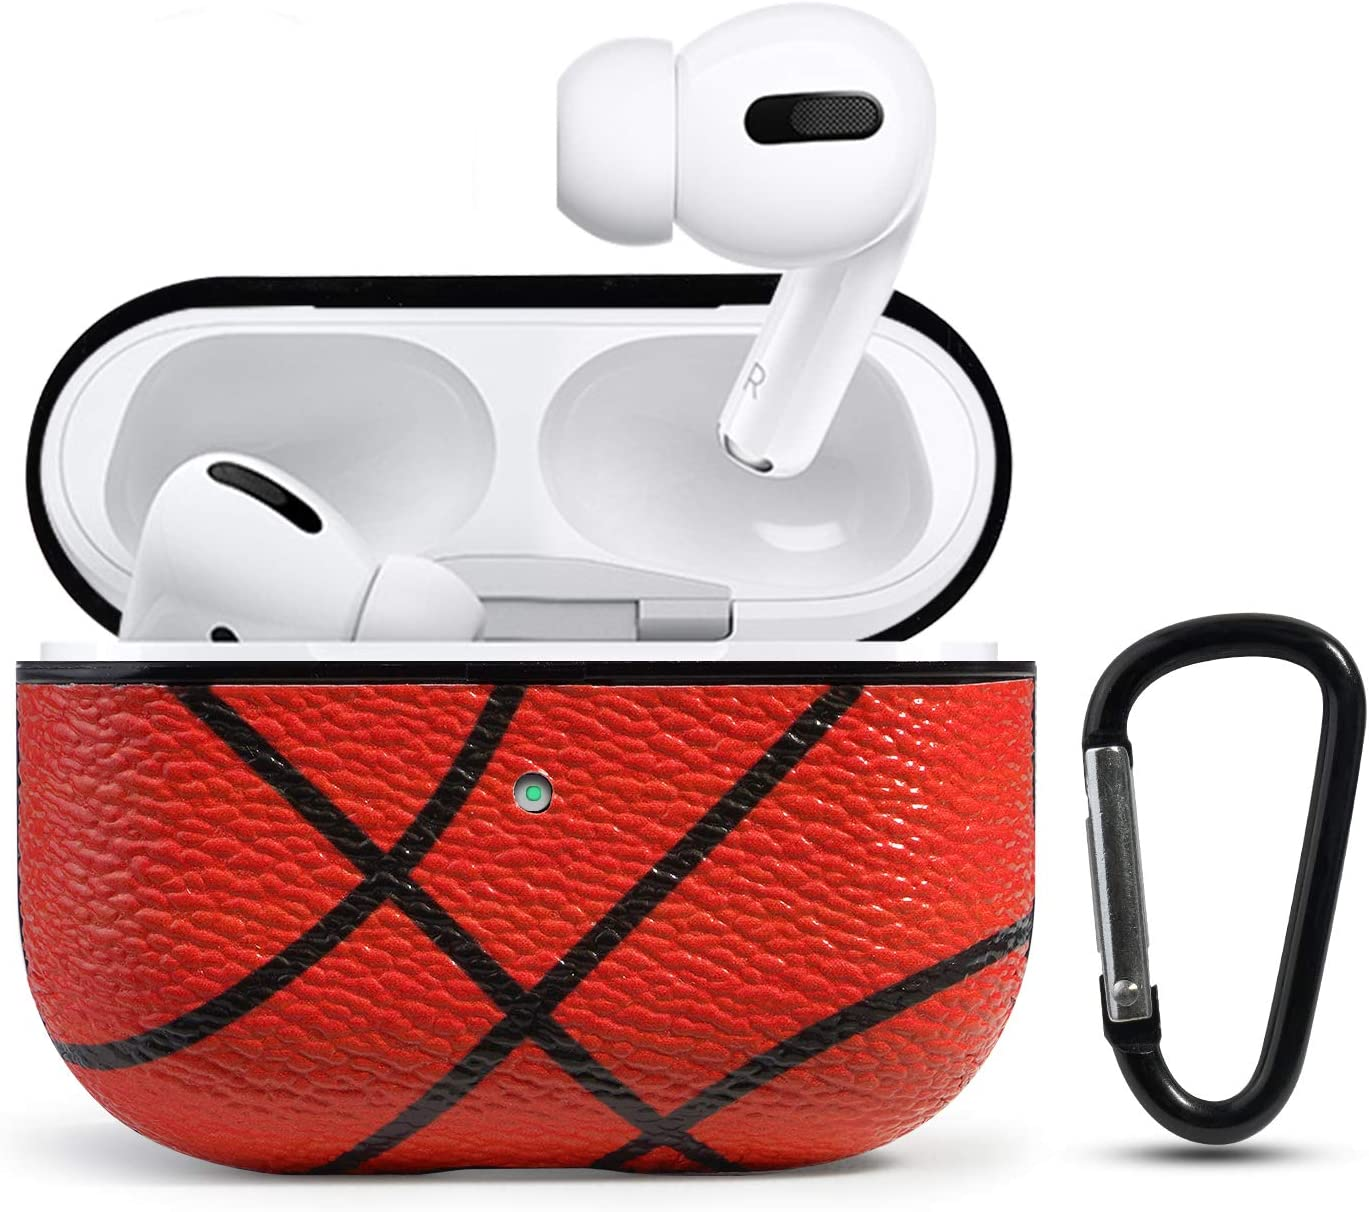 Best case for airpod pros